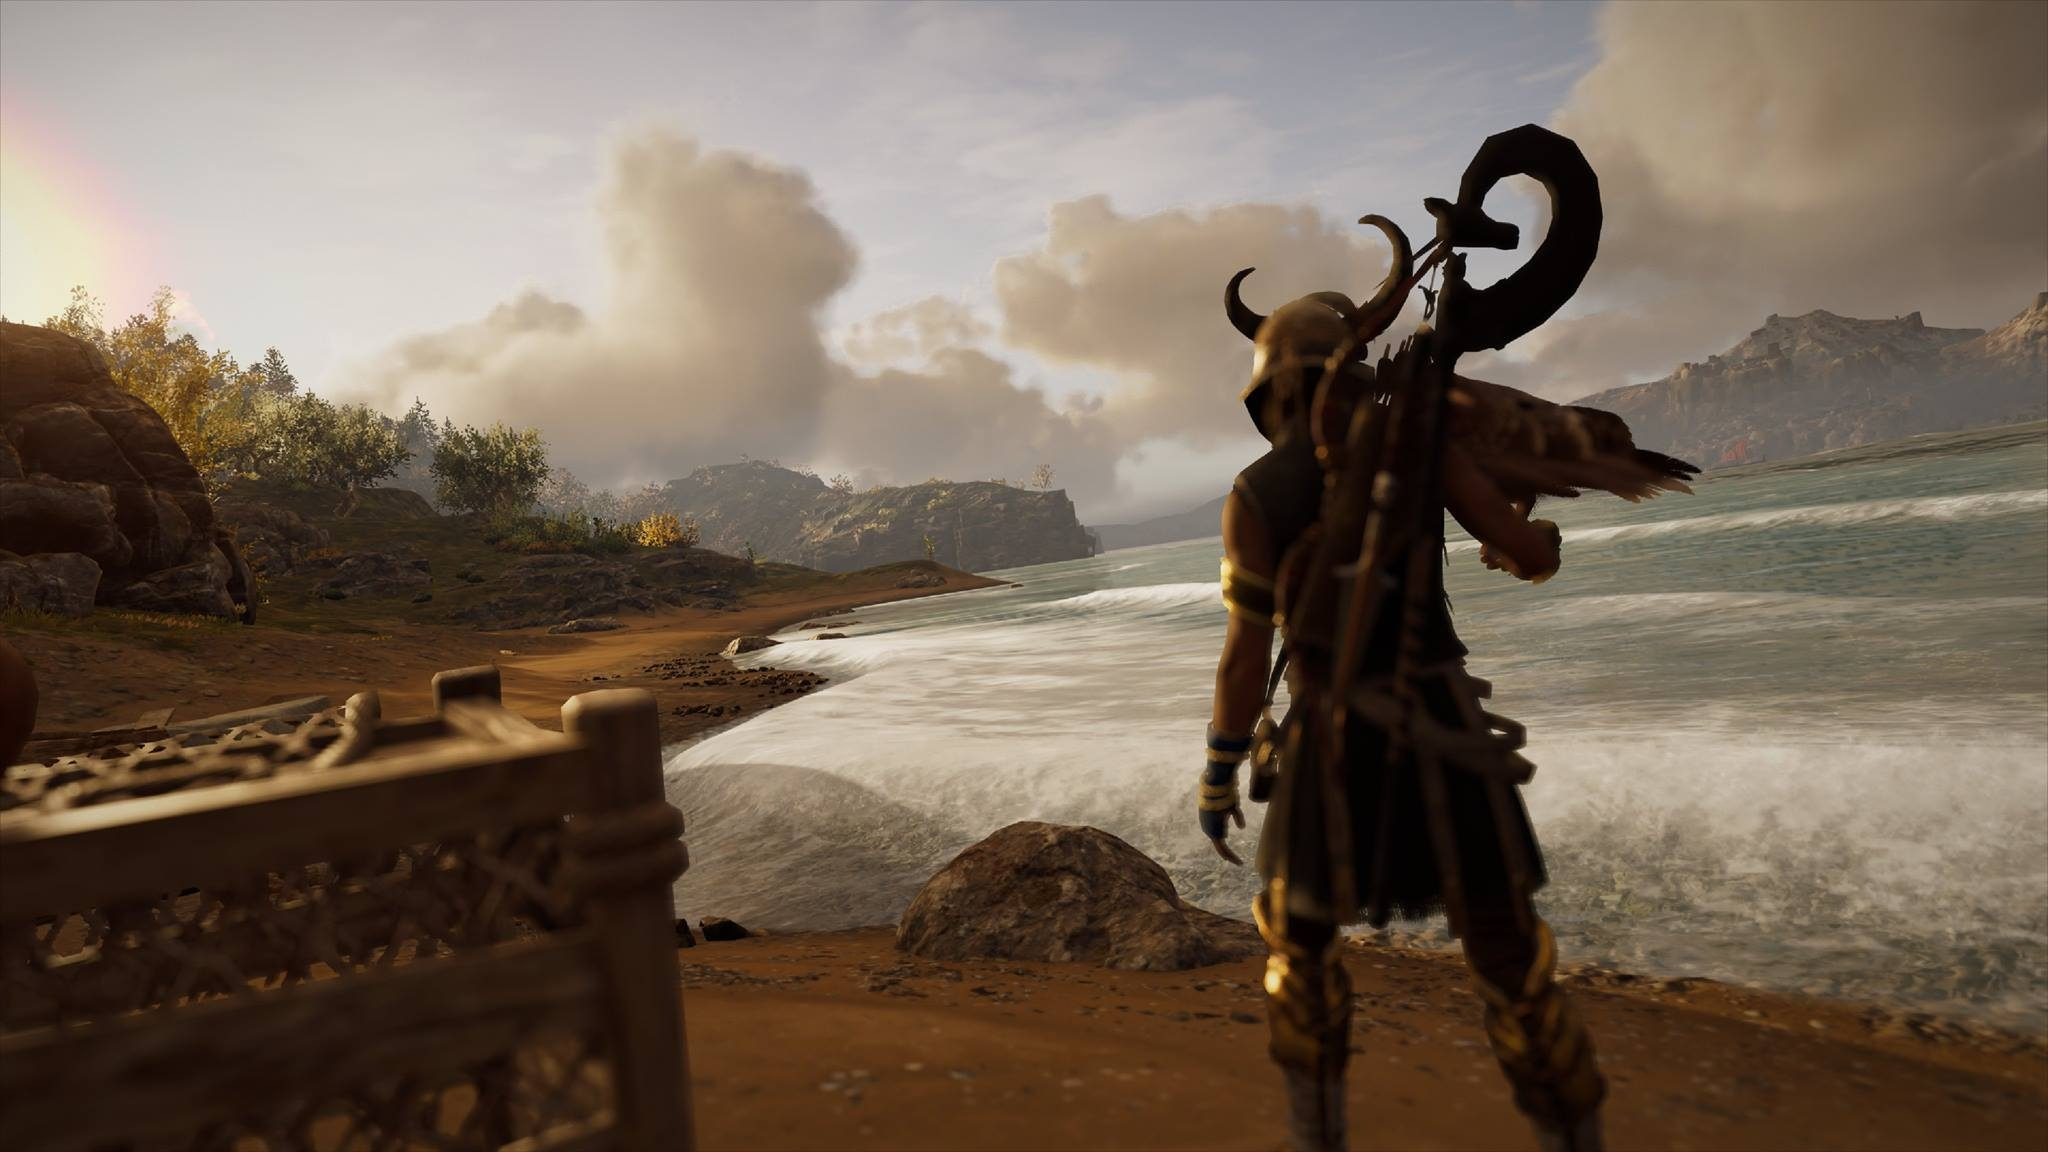 Where did the missing features of Assassin's Creed go?